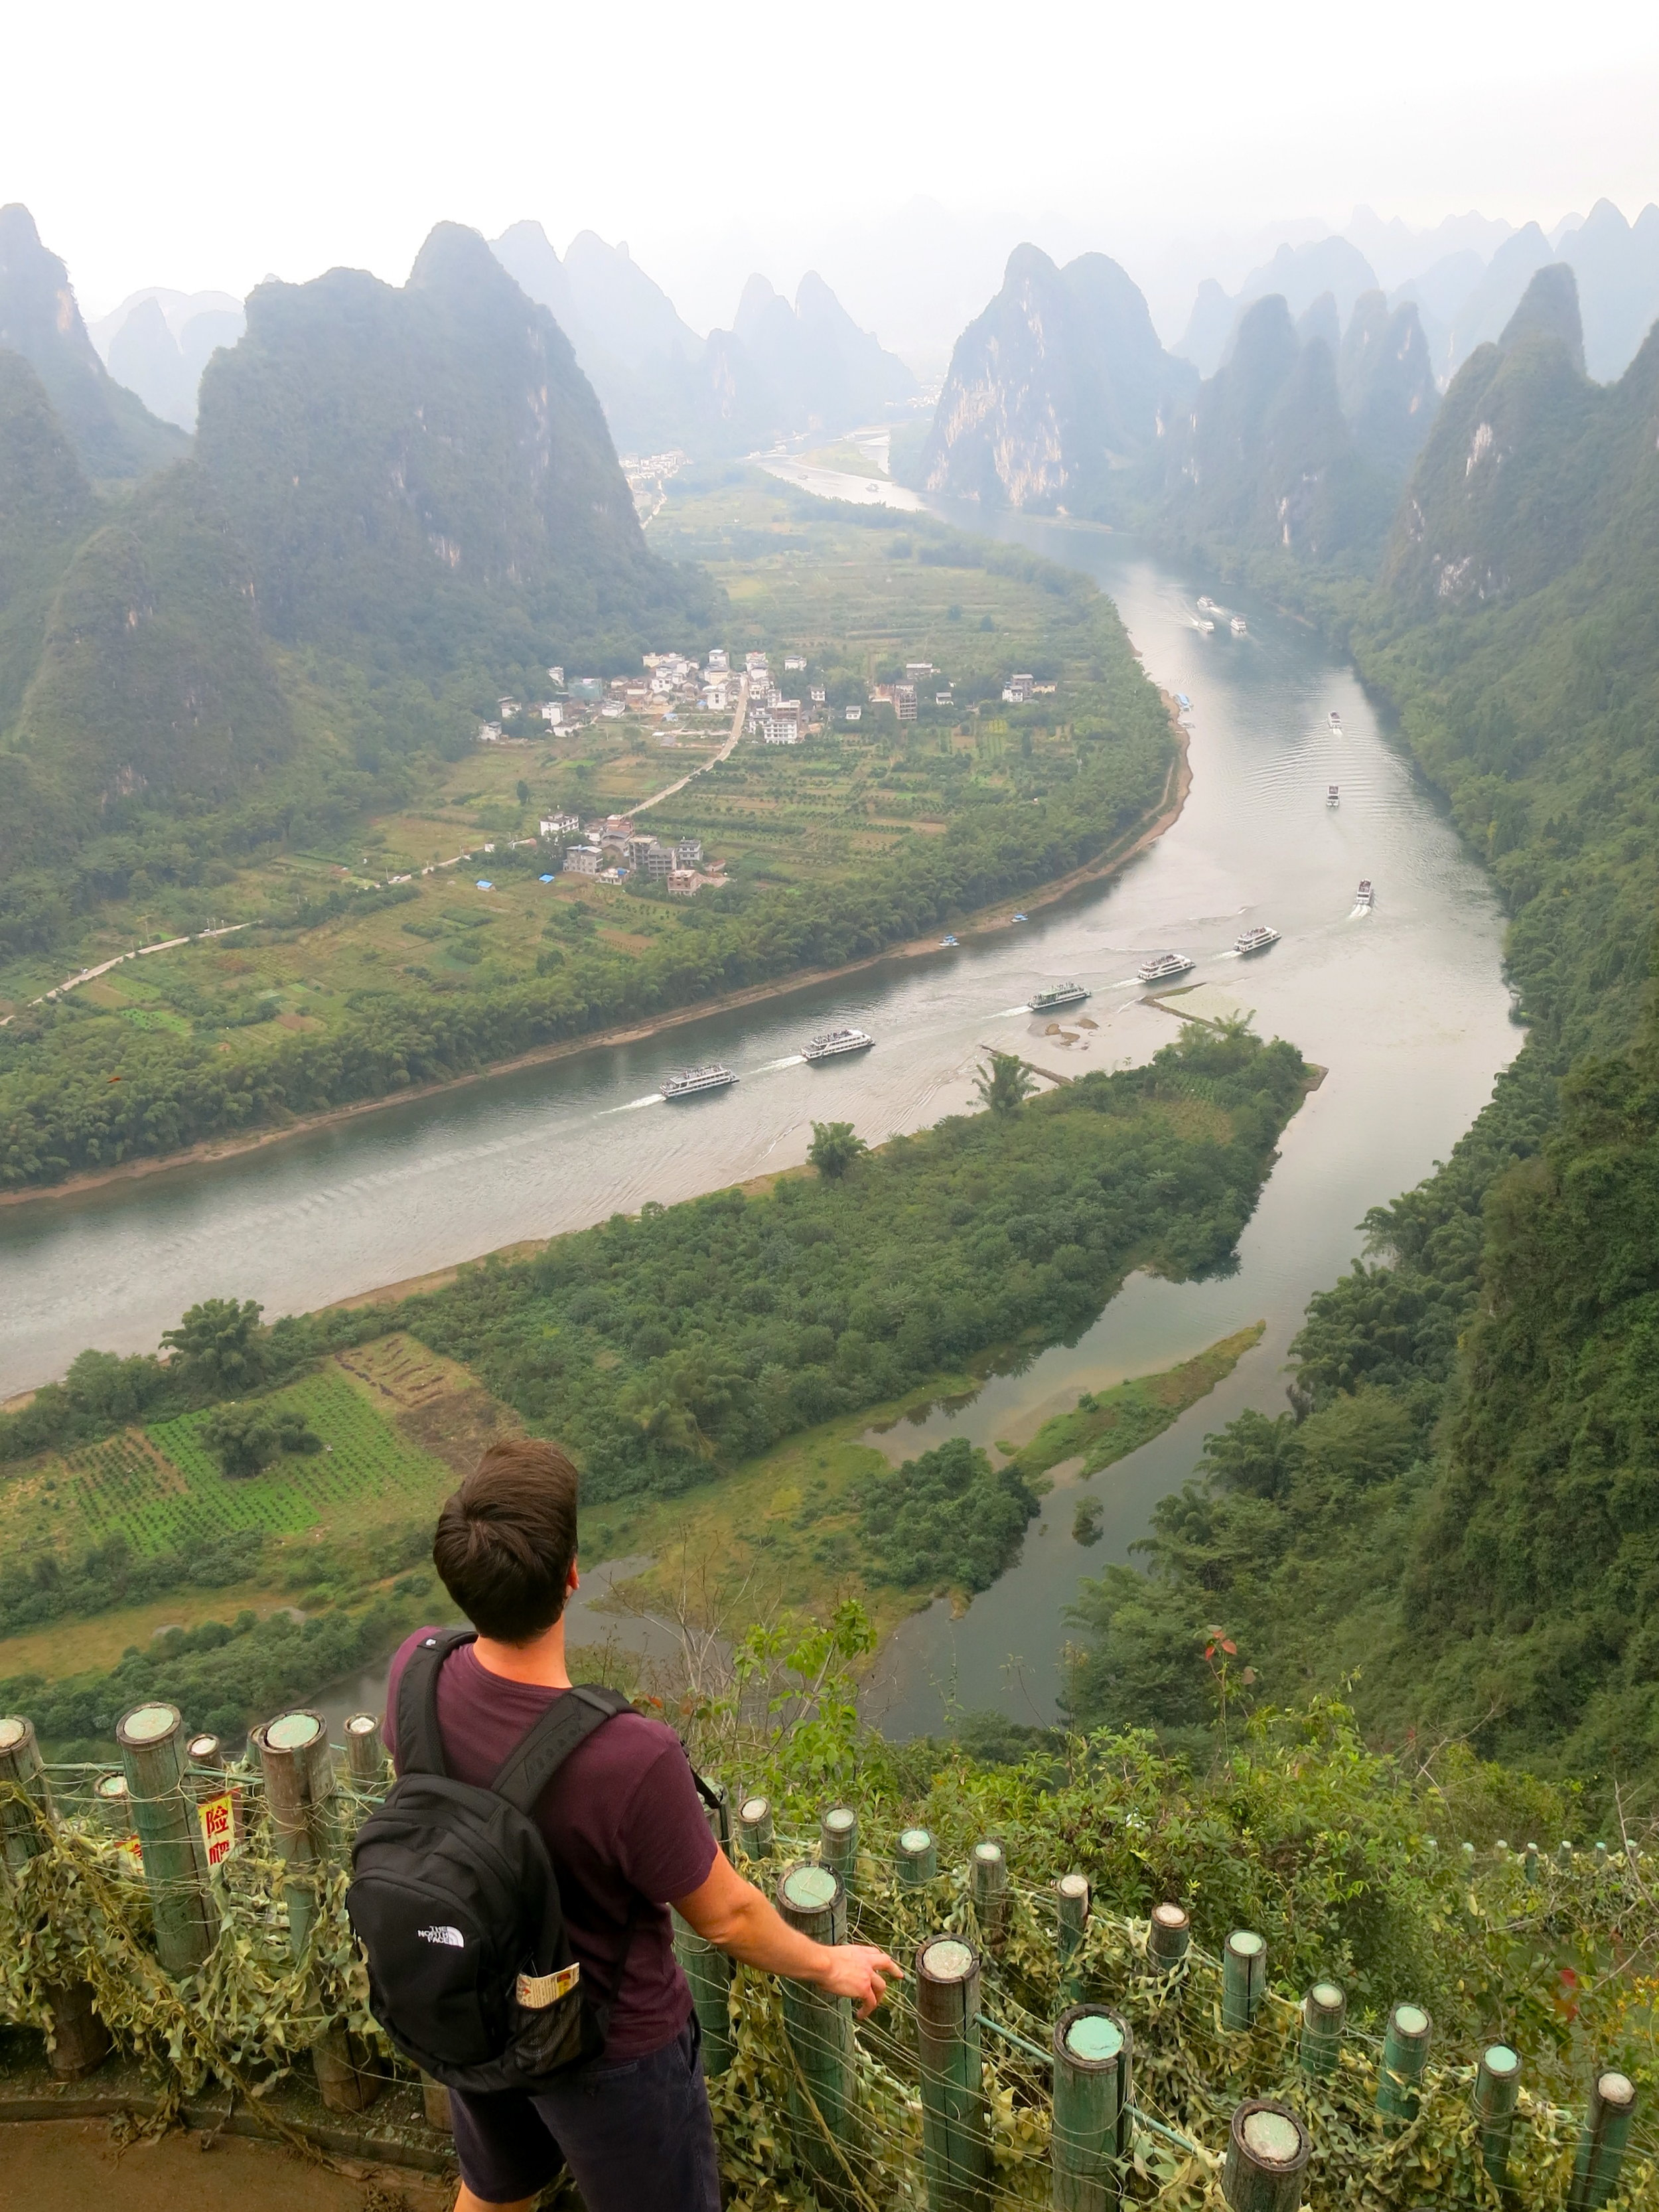 View on karst mountains in the south of China